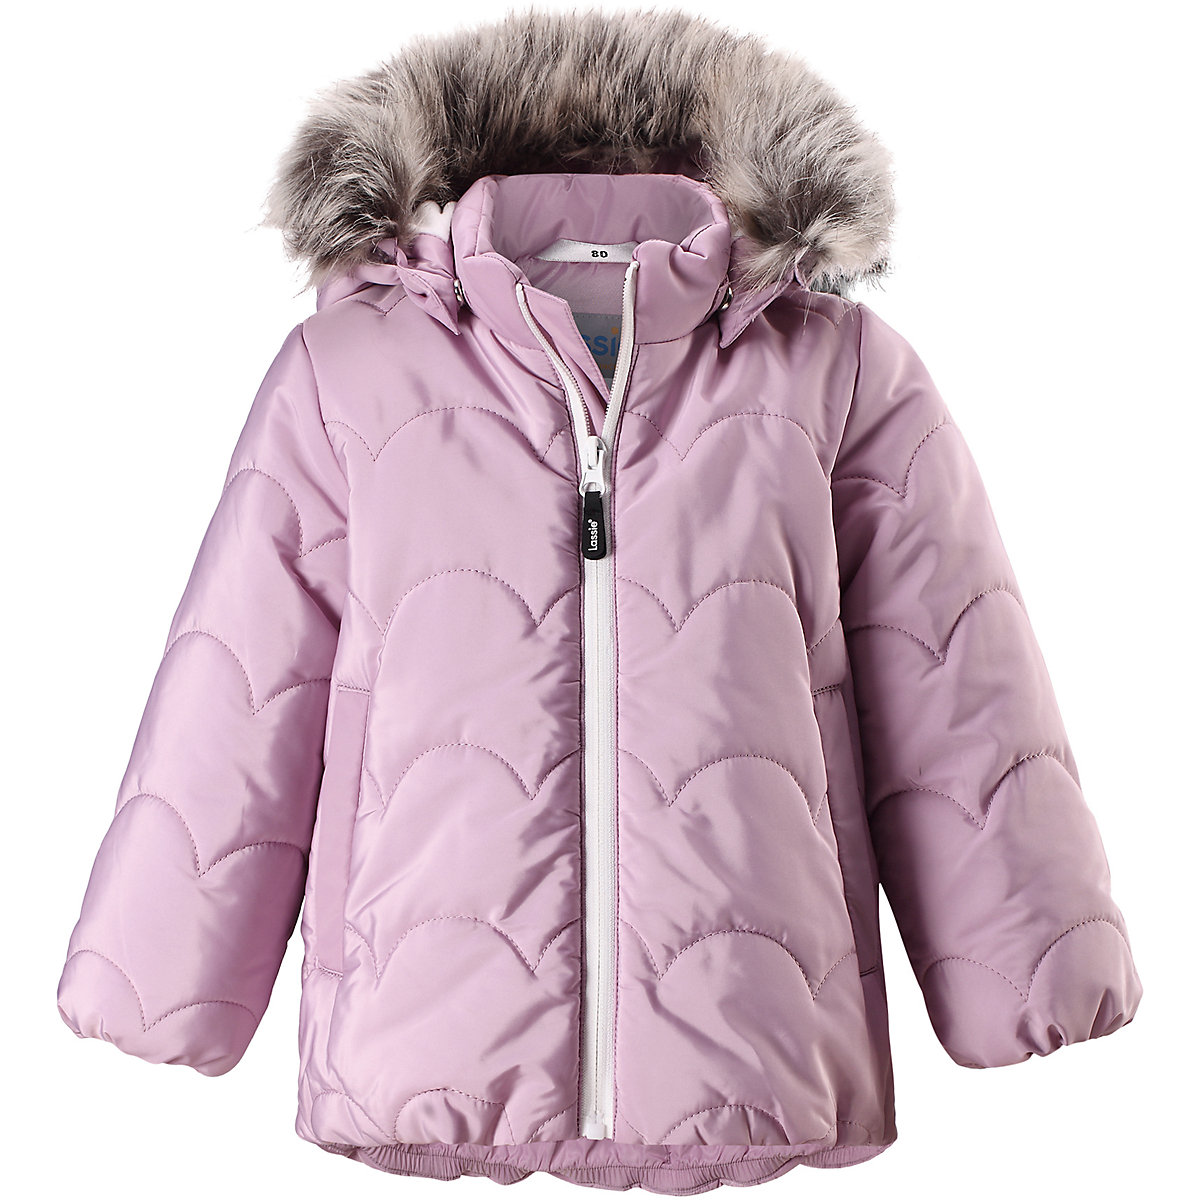 Jackets & Coats LASSIE for girls 8629413 Jacket Coat Denim Cardigan Warm Children clothes Kids jackets befree 1831016105 50 coat jacket women clothes for female apparel tmallfs